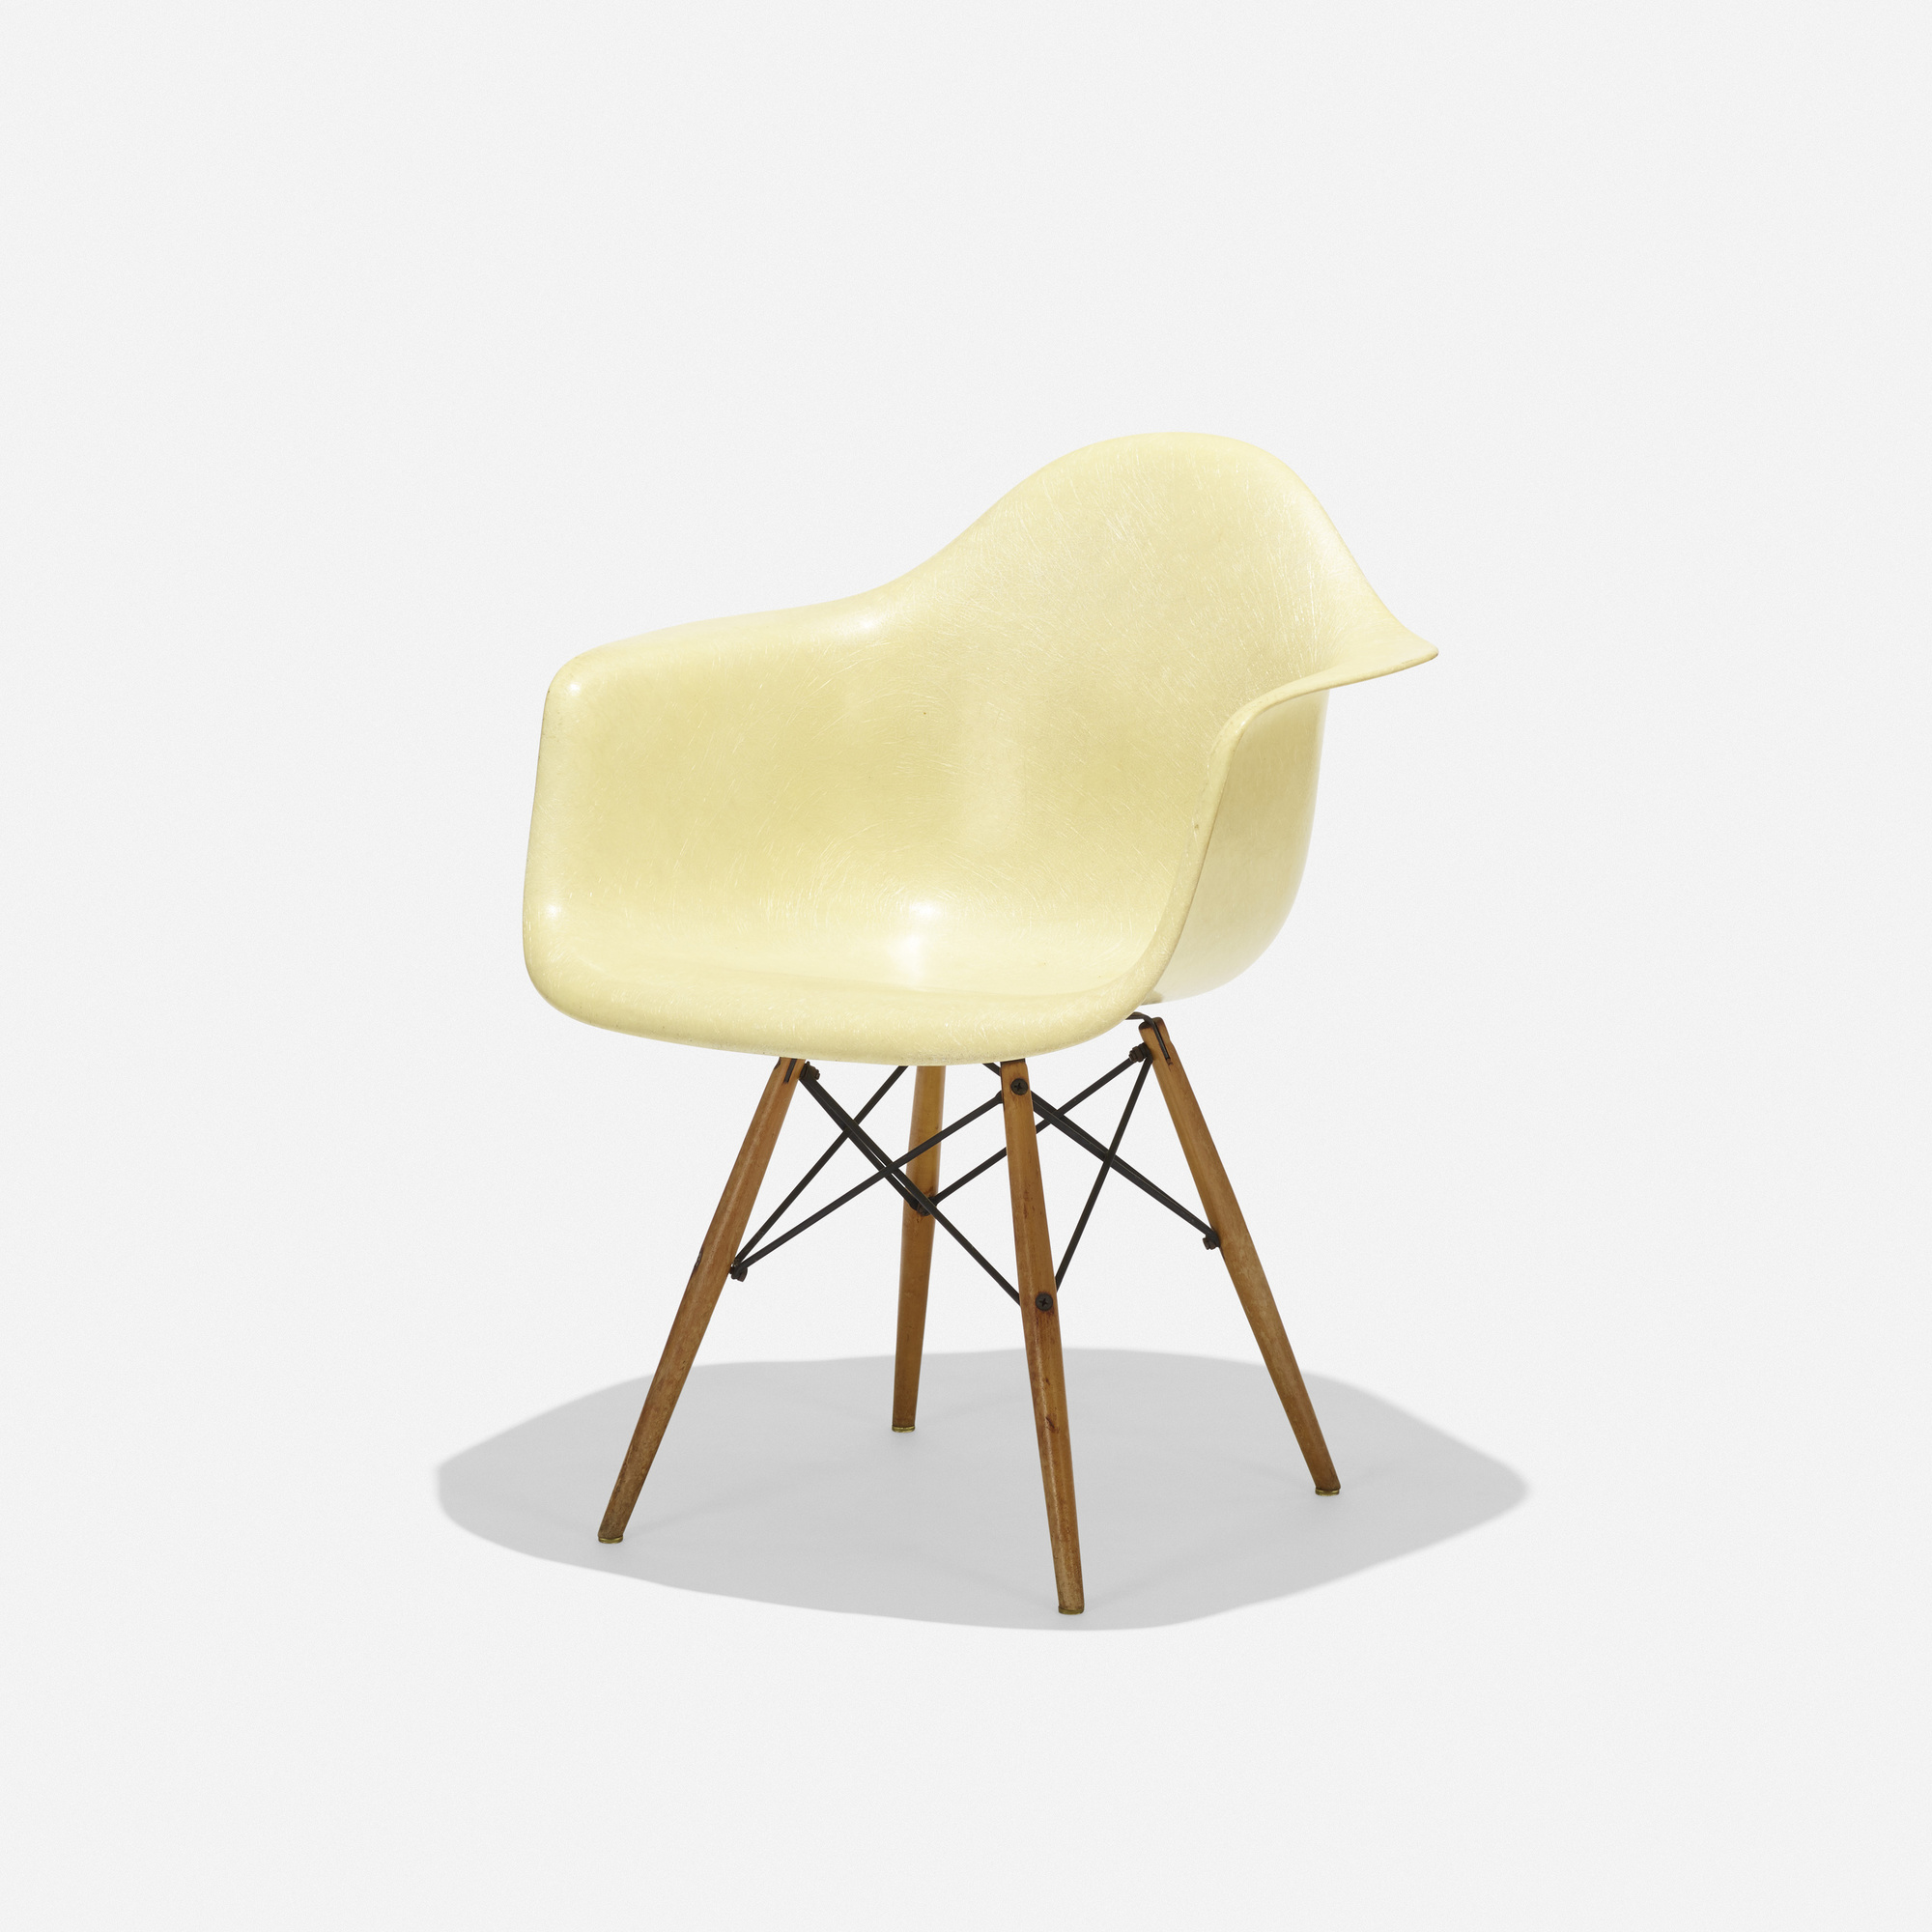 168 charles and ray eames daw - Charles eames and ray eames ...